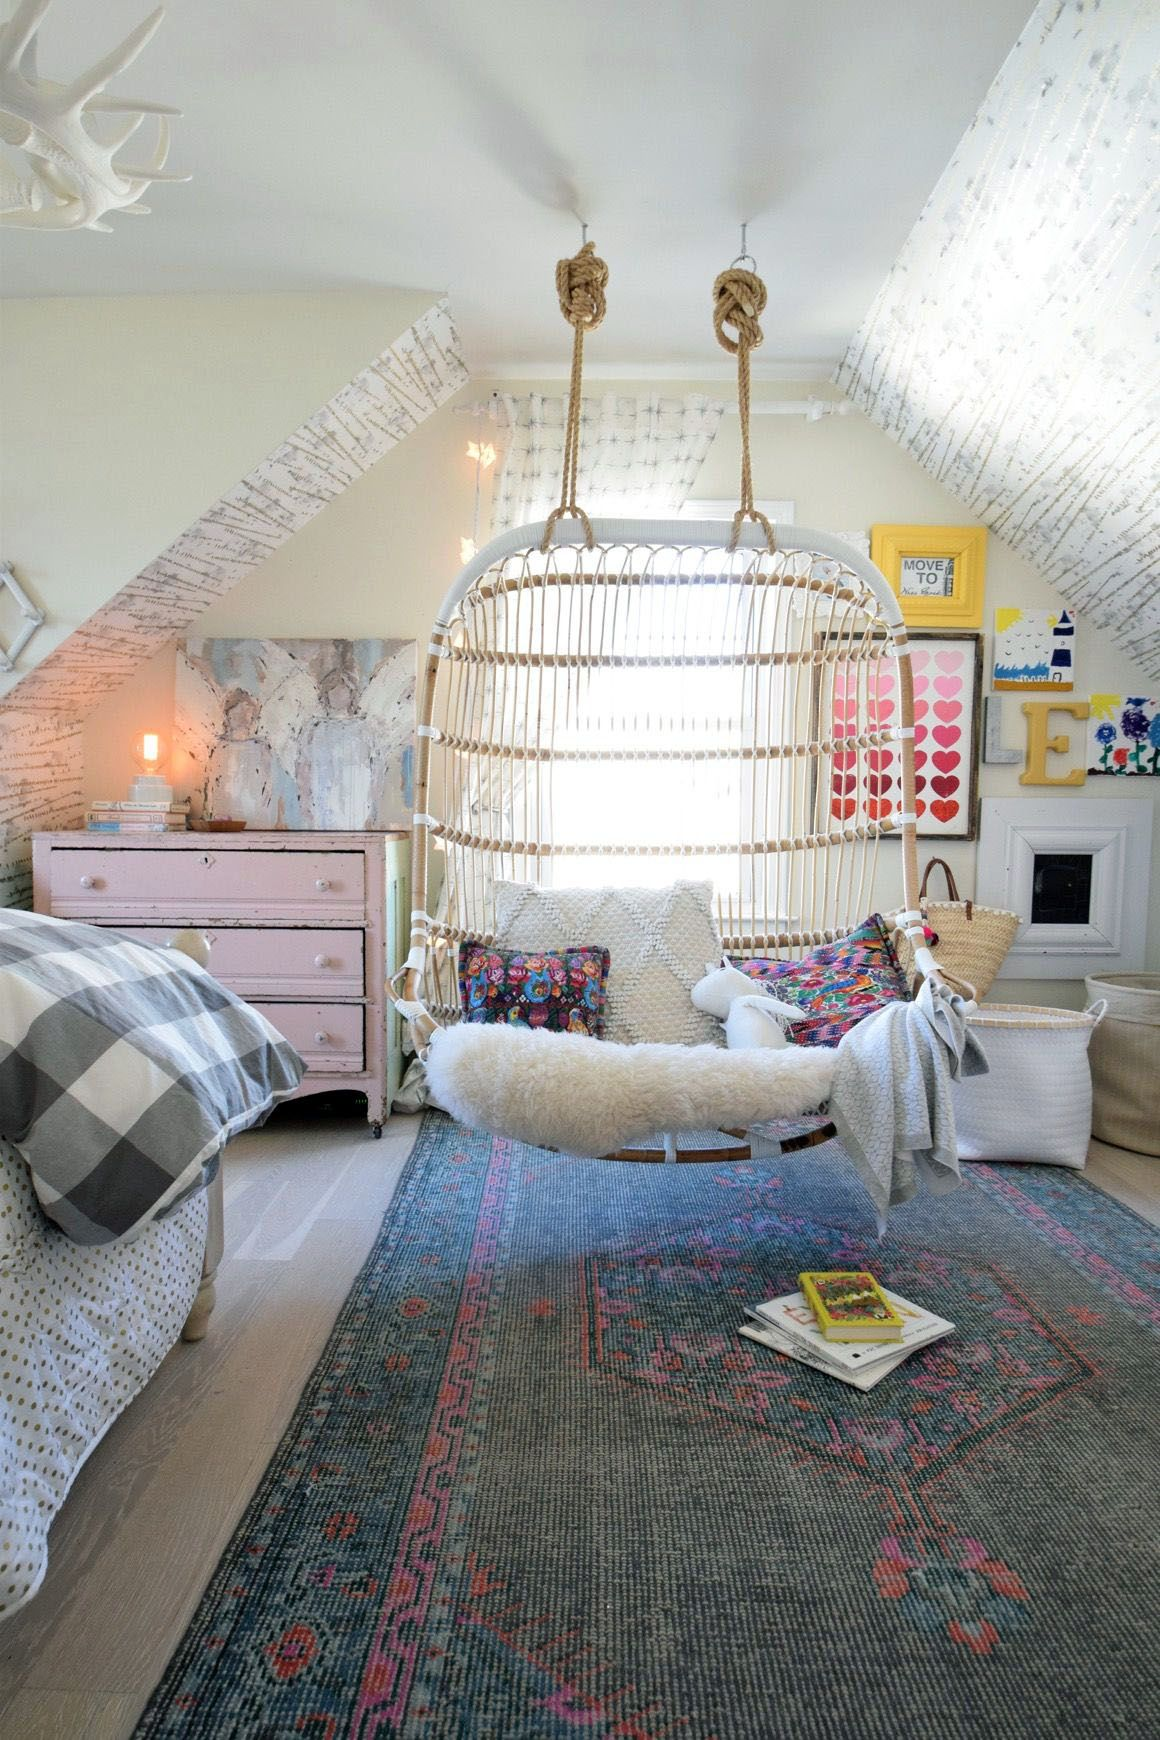 5 Bed room Suggestions That Are Actually Fun as well as Cool ...